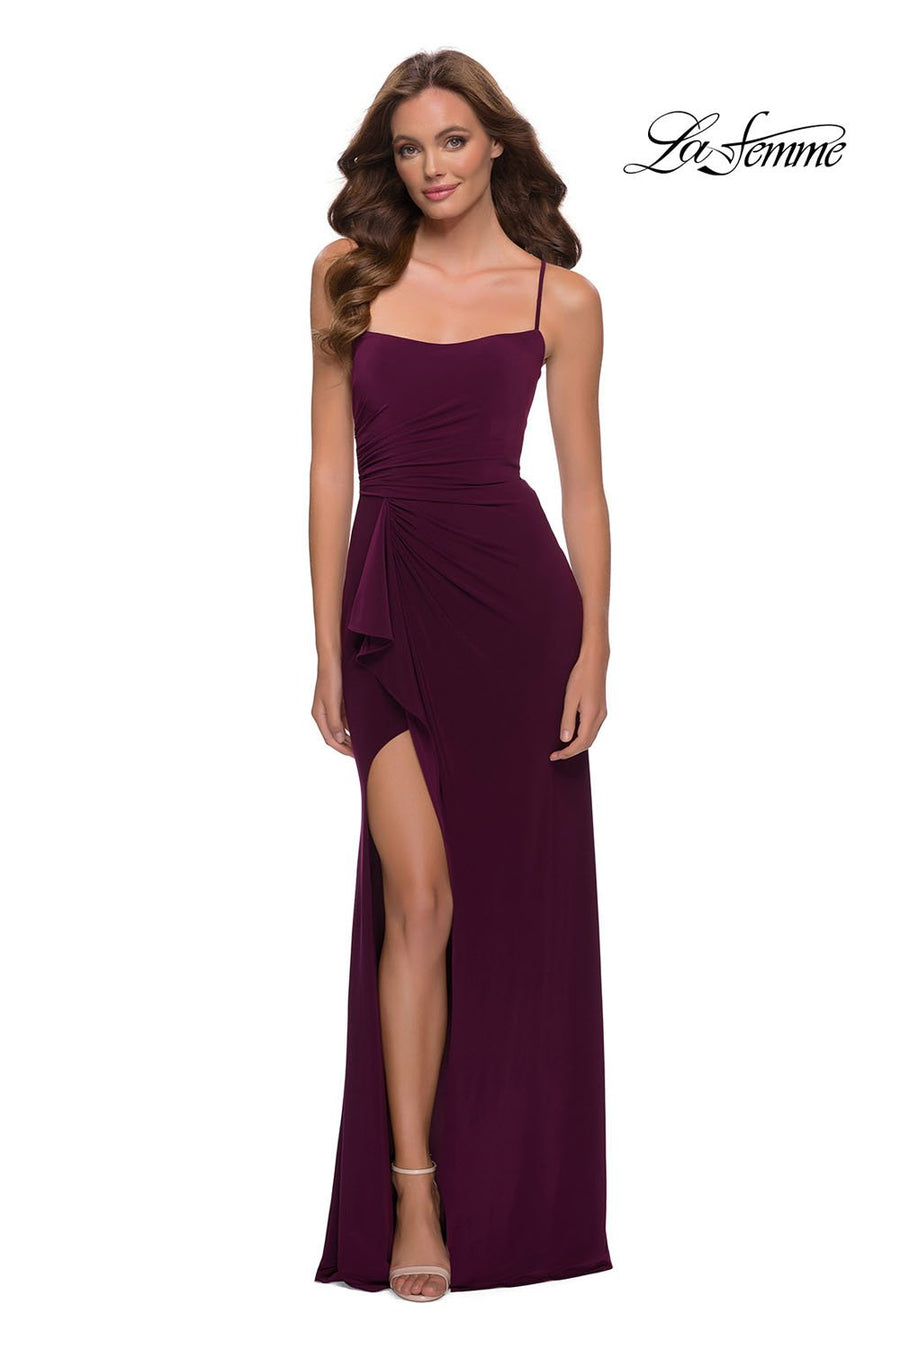 La Femme 29735 prom dress images.  La Femme 29735 is available in these colors: Dark Berry, Navy.